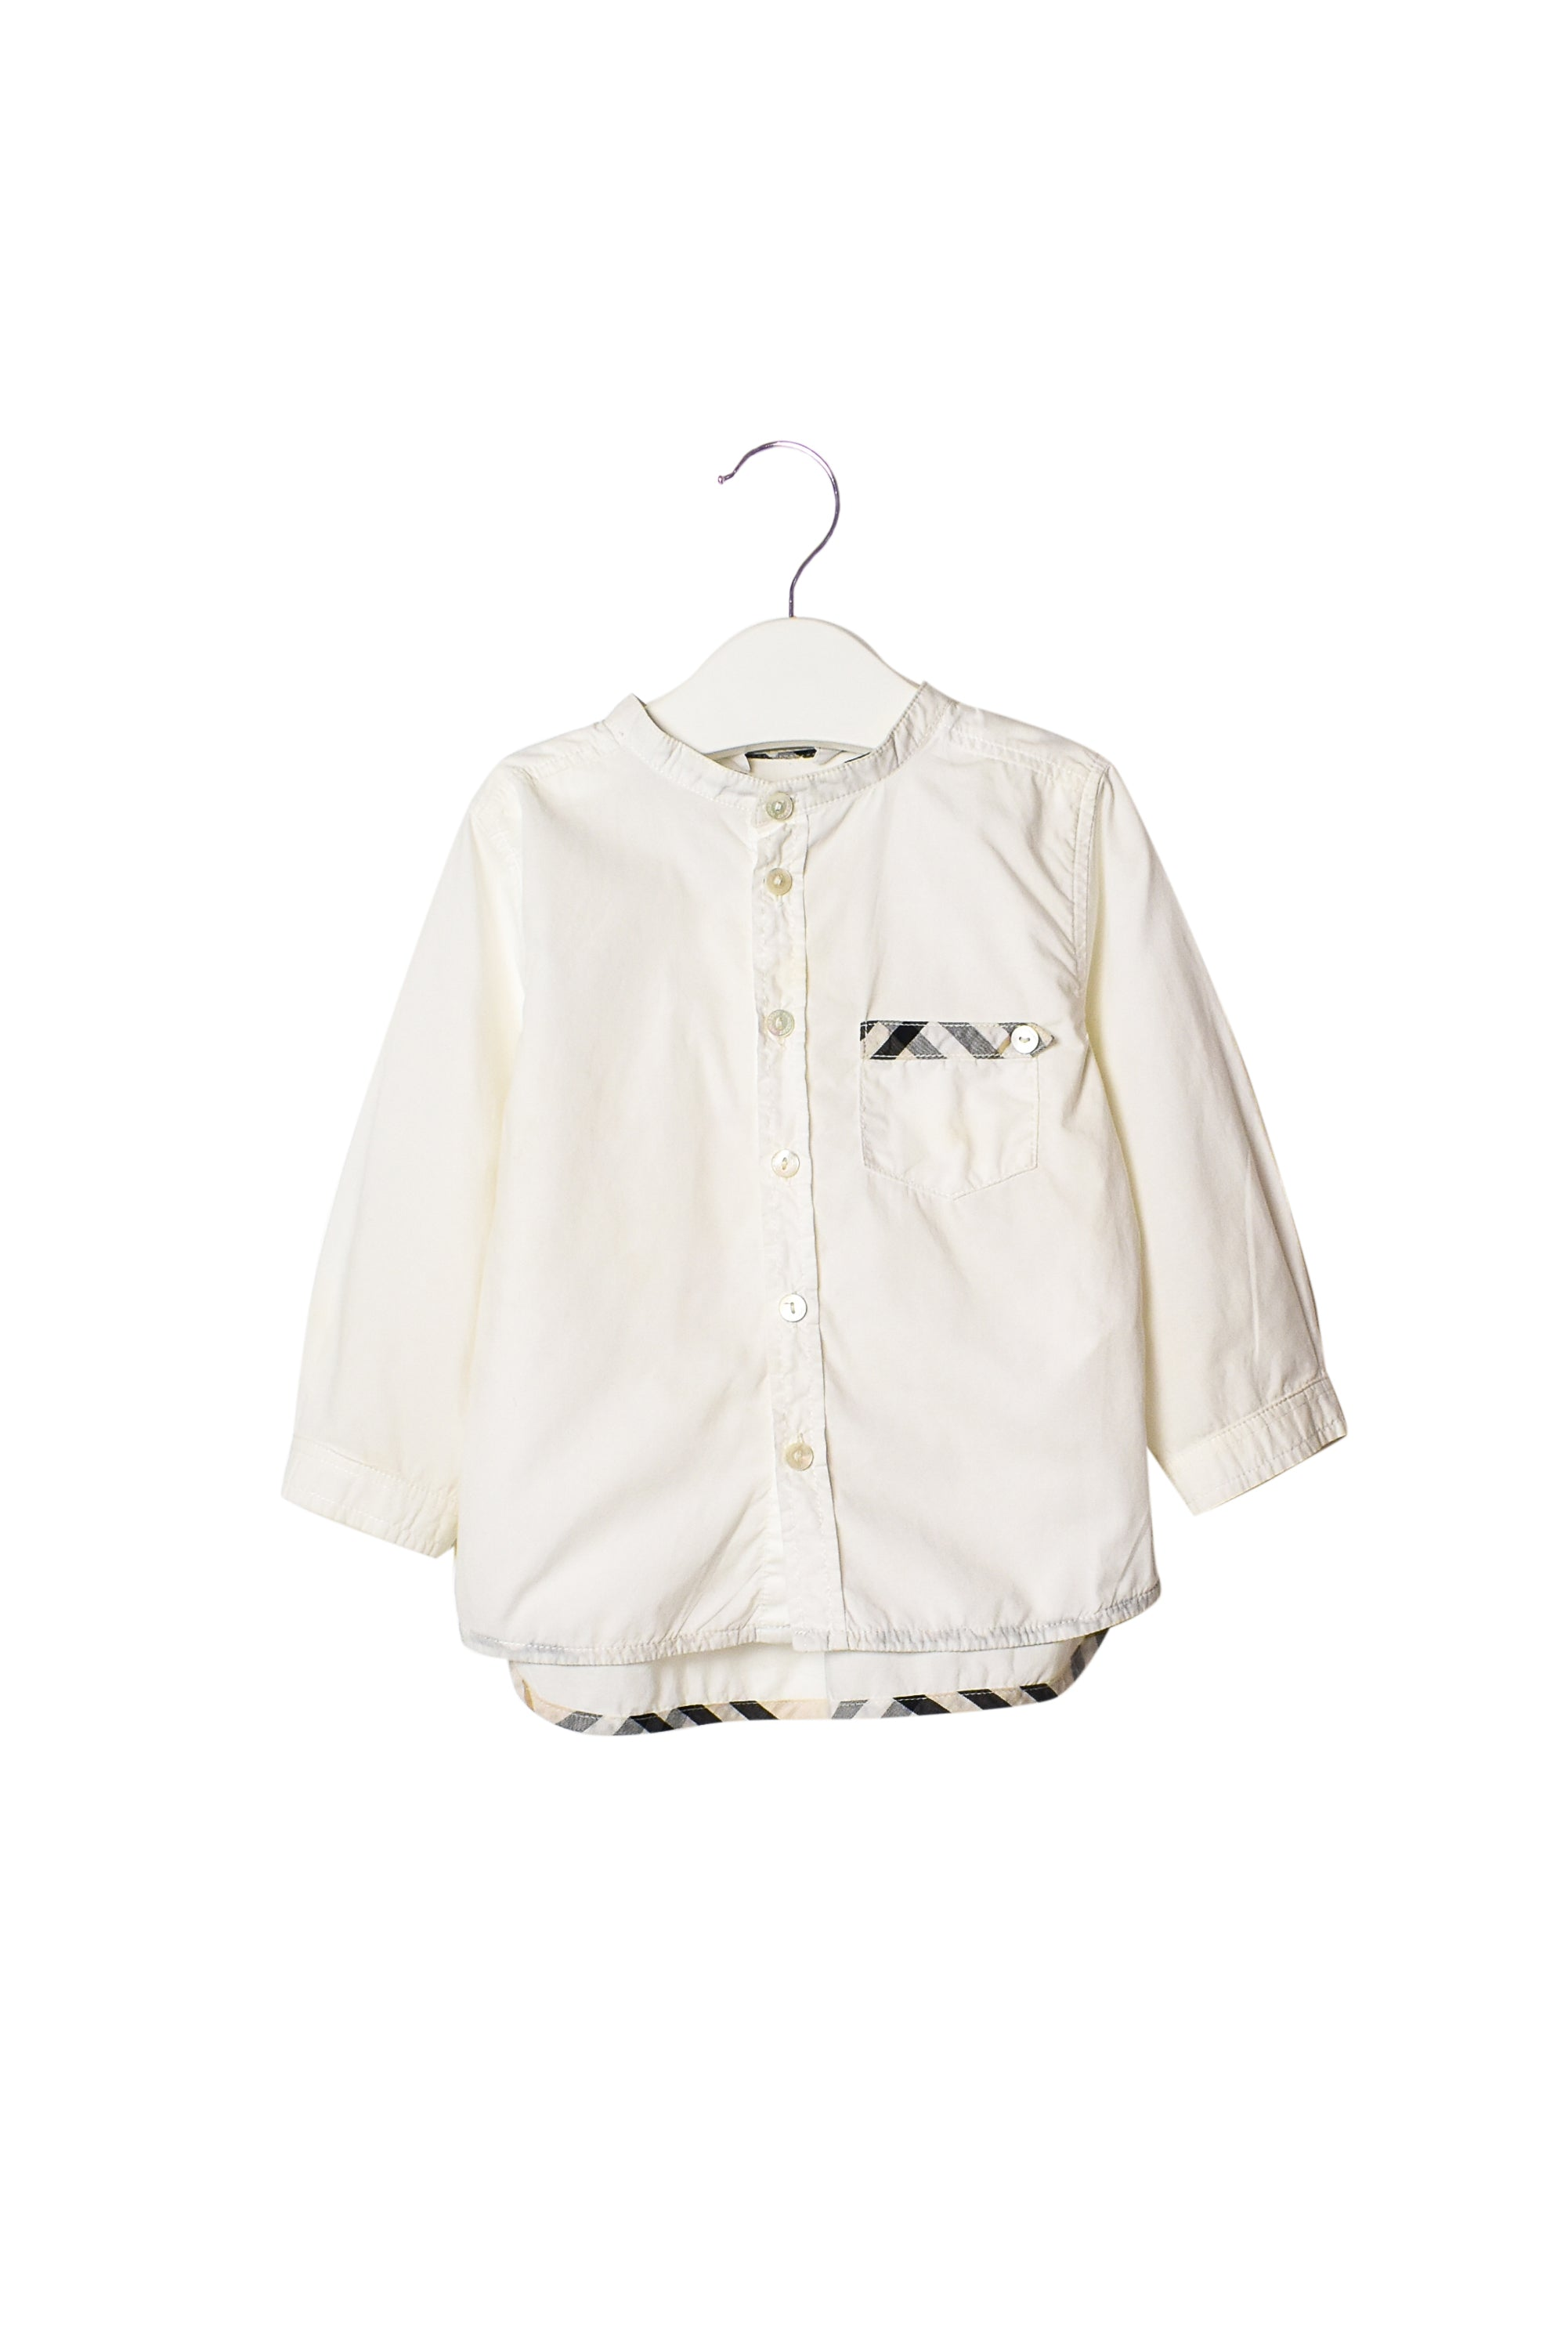 10007809 Burberry Baby~ Shirt 18M at Retykle